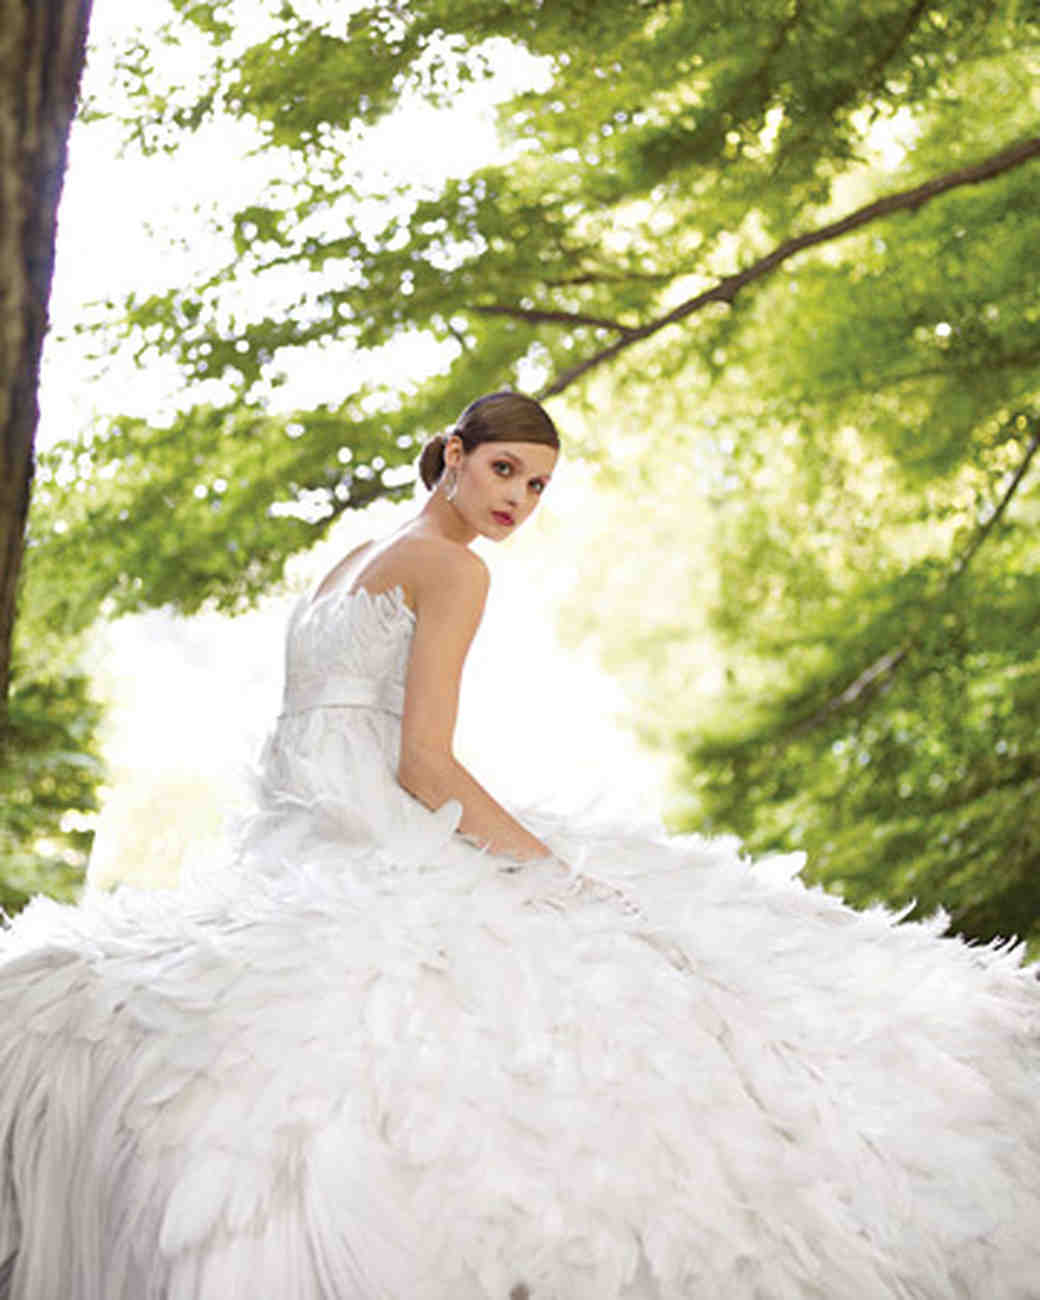 Outdoor Dresses for Wedding